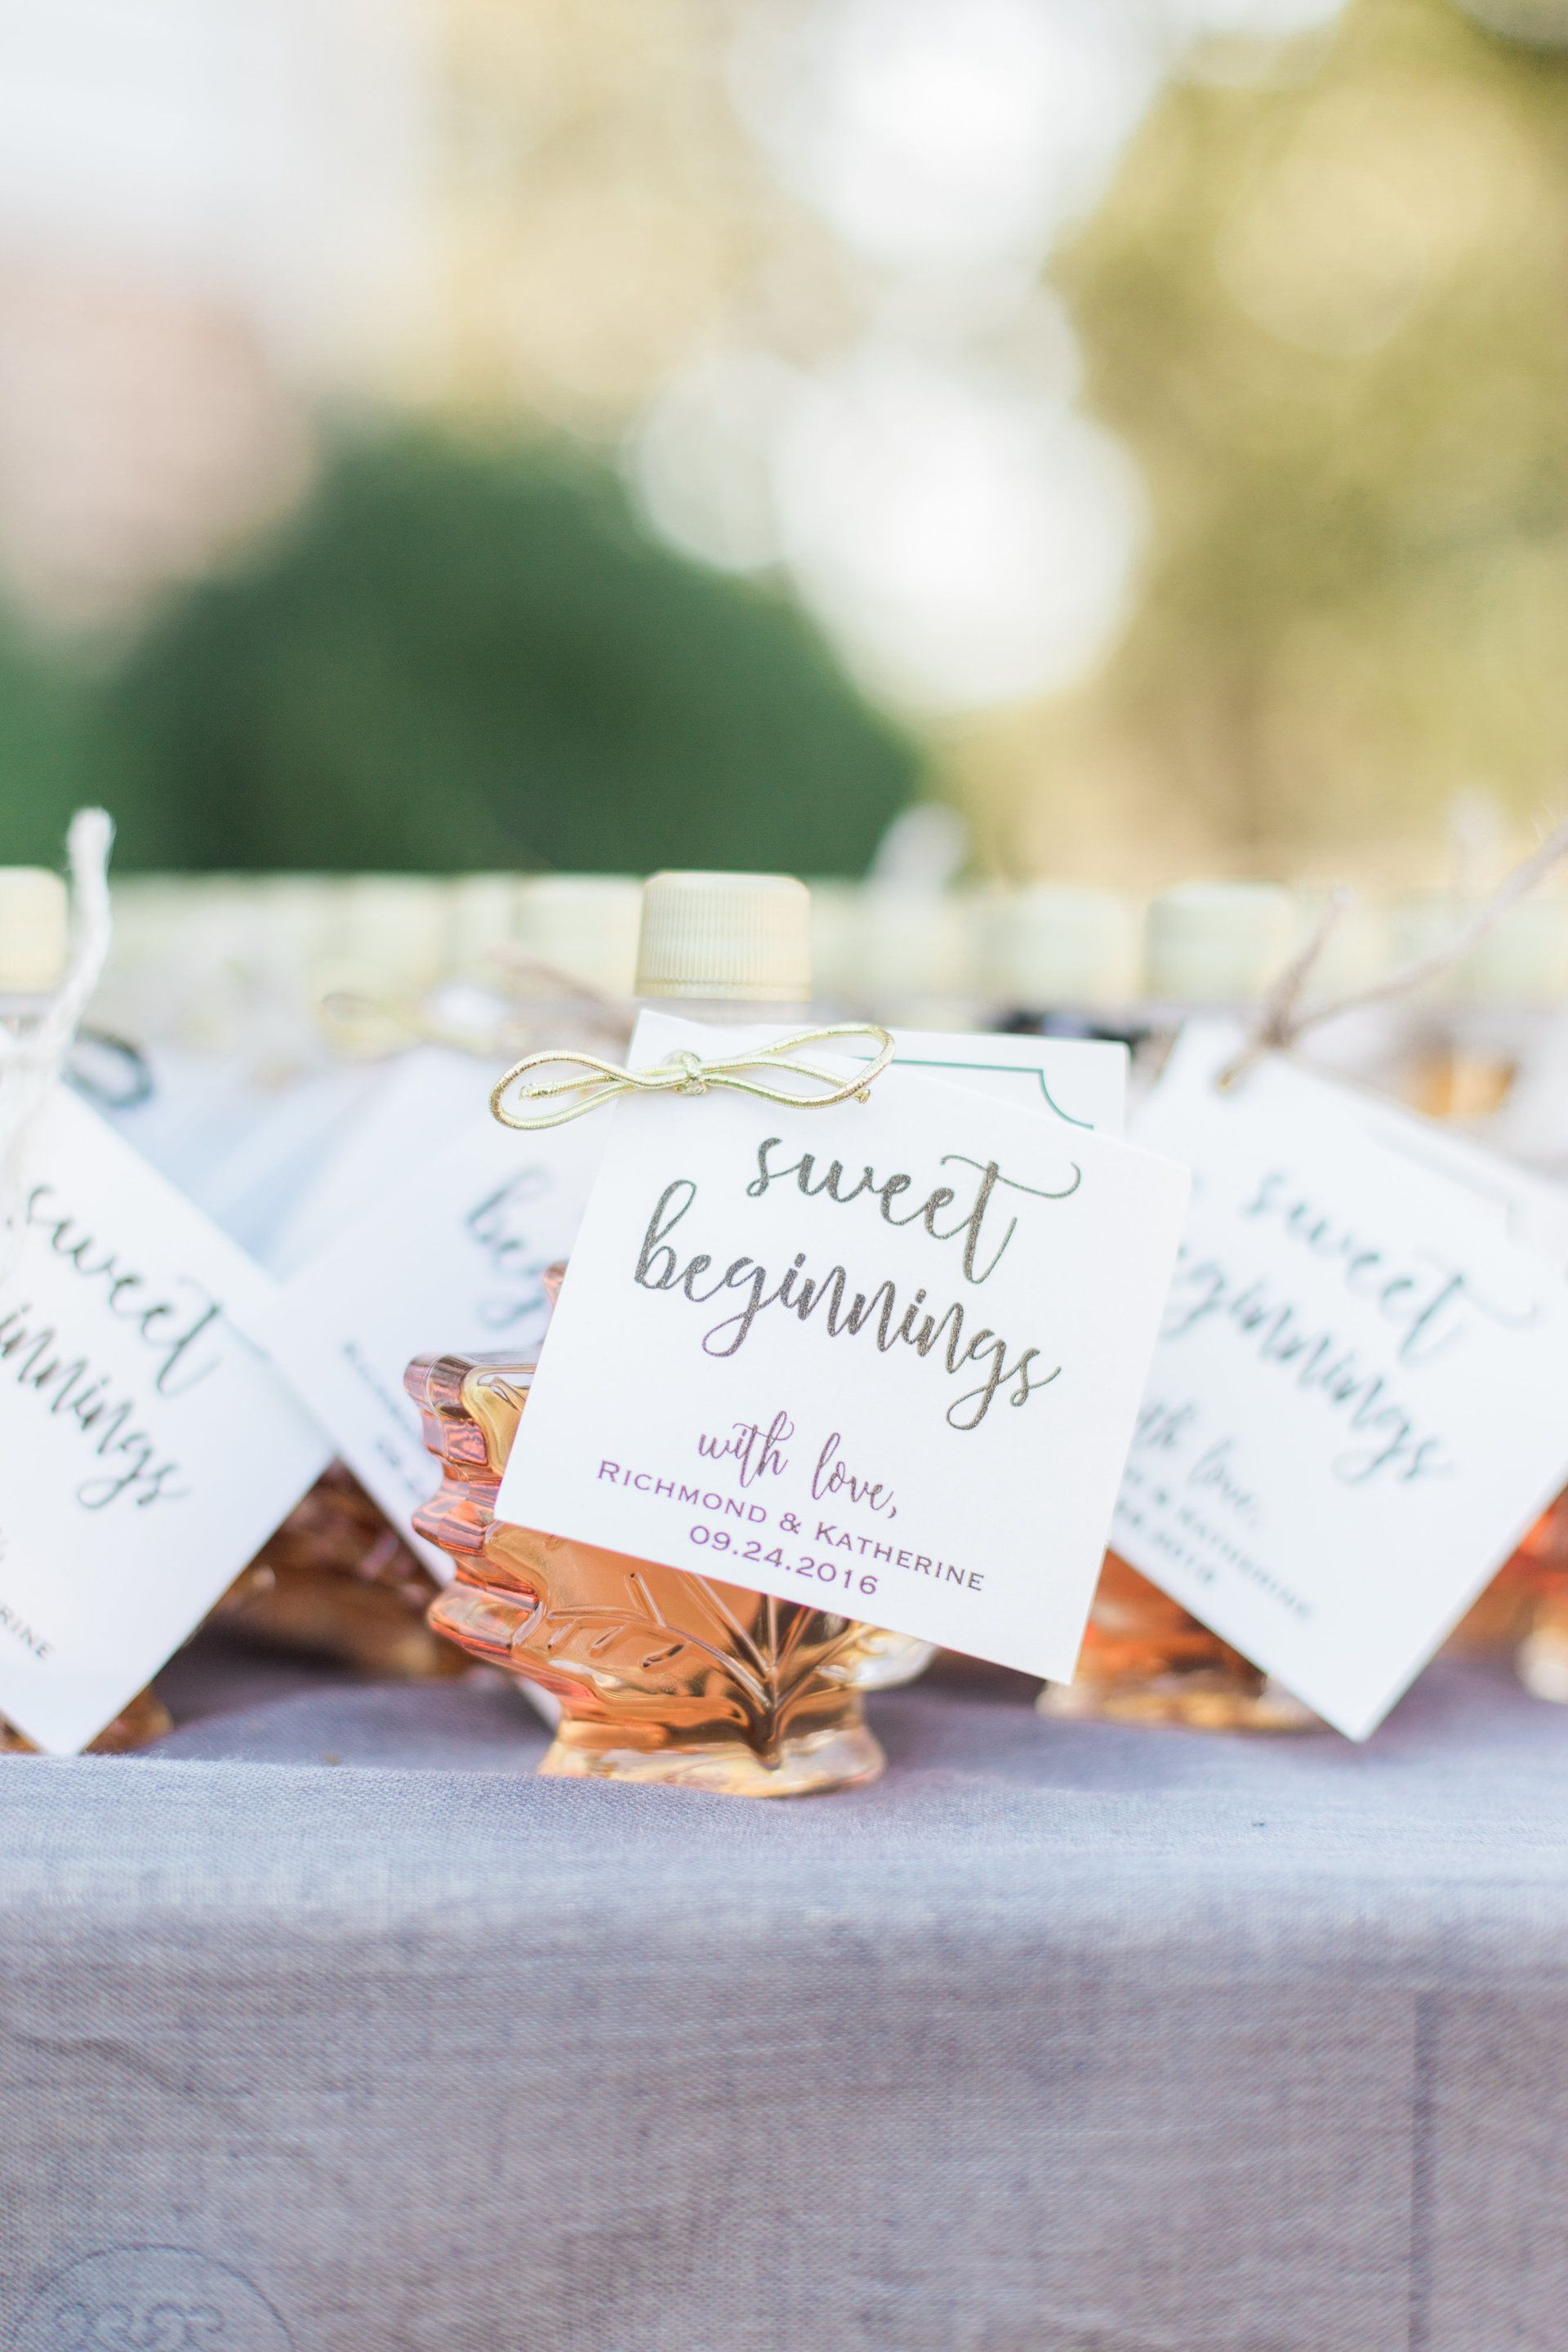 The Smarter Way to Wed | Wedding favour sweets, Edible favors and Favors